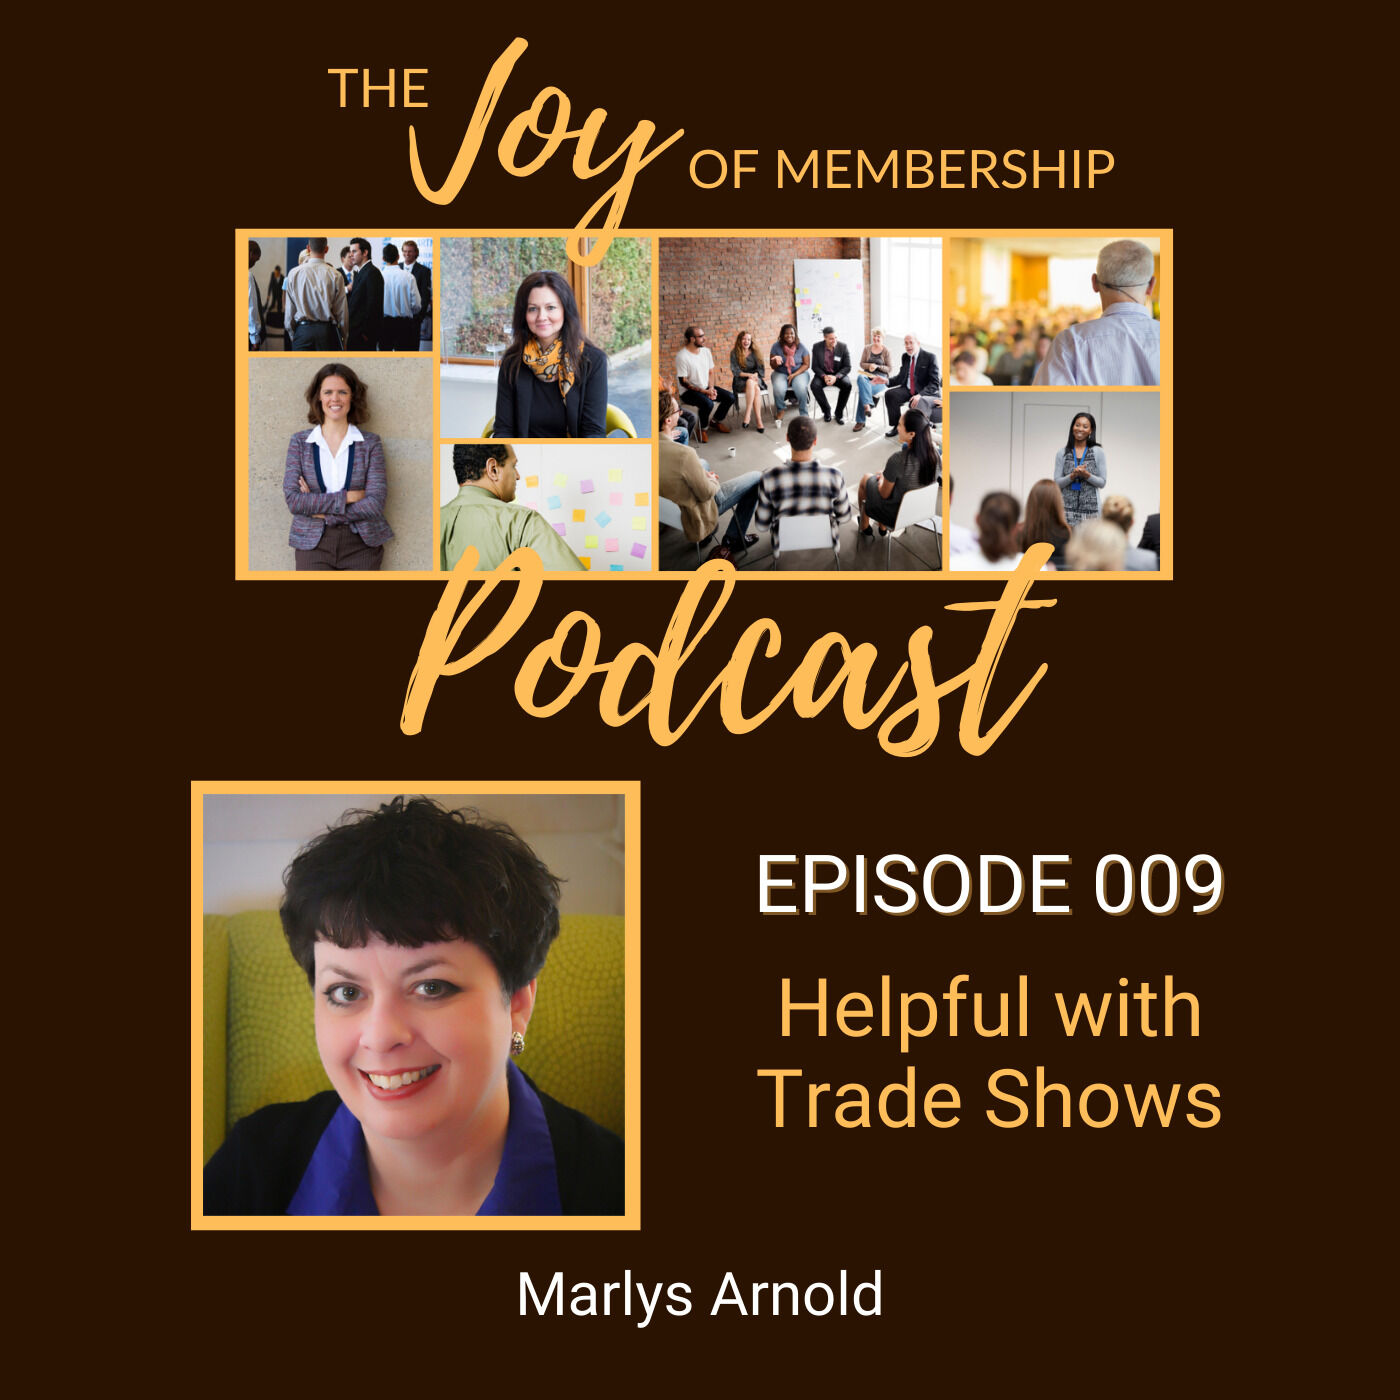 Helpful with Trade Shows: Marlys Arnold